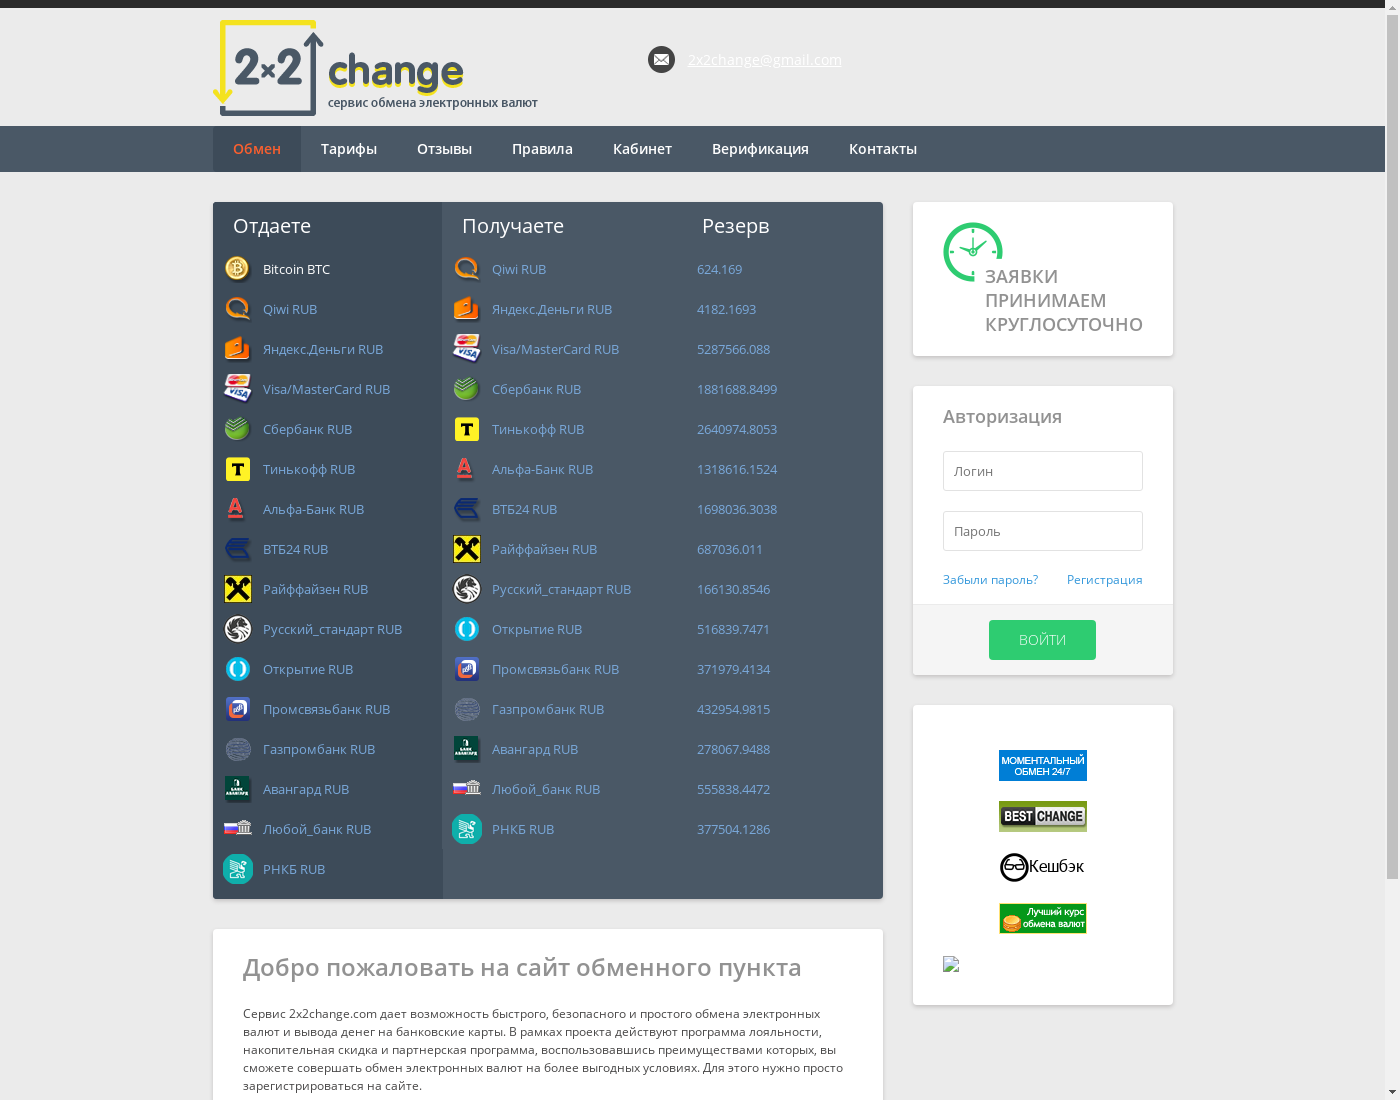 2x2change user interface: the home page in English